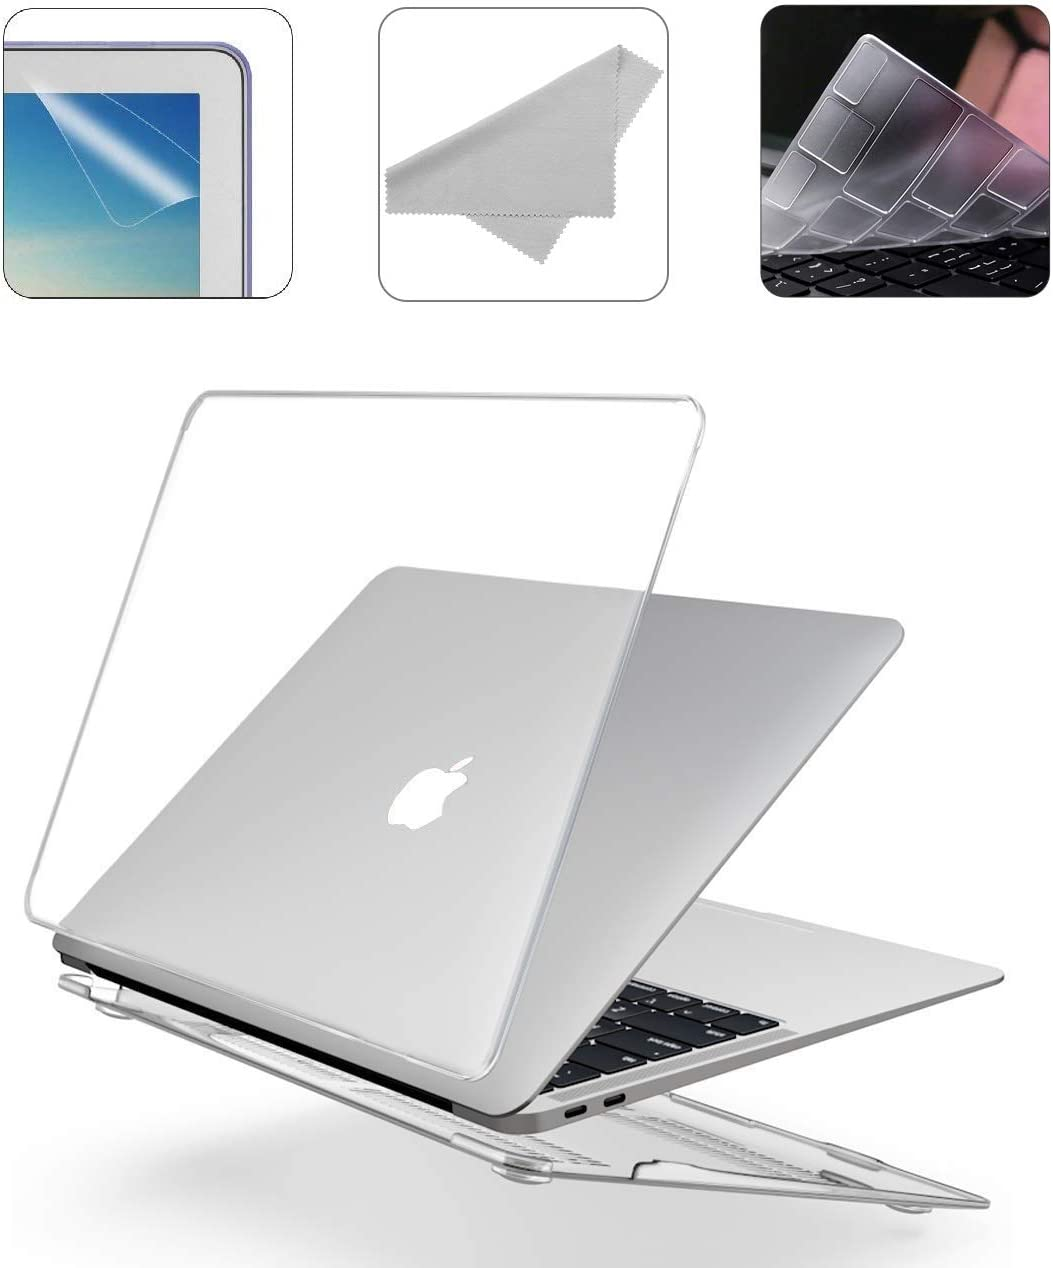 2020 New 13 Inch MacBook Pro A2251 A2289 A2159 A1989 A1706 Hard Case Pack with Plastic Hard Shell, Keyboard Cover, Screen Protector & Cleaning Cloth WGS58 - Crystal Clear